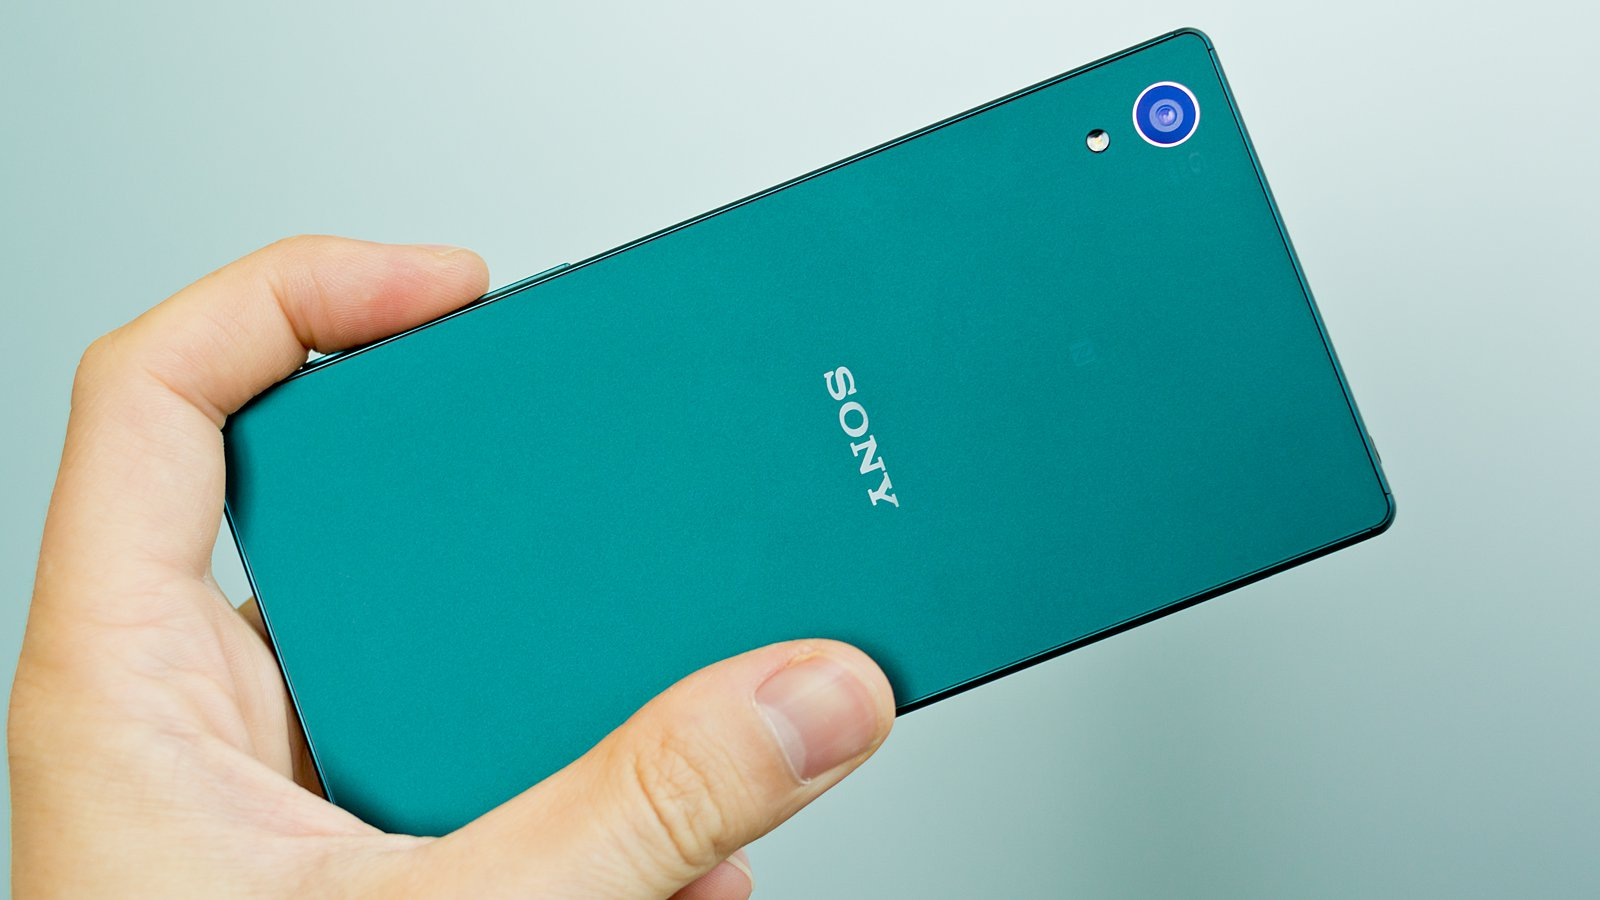 Best Smartphone Camera: 3 Amazing Handset Shooters of the Current Market